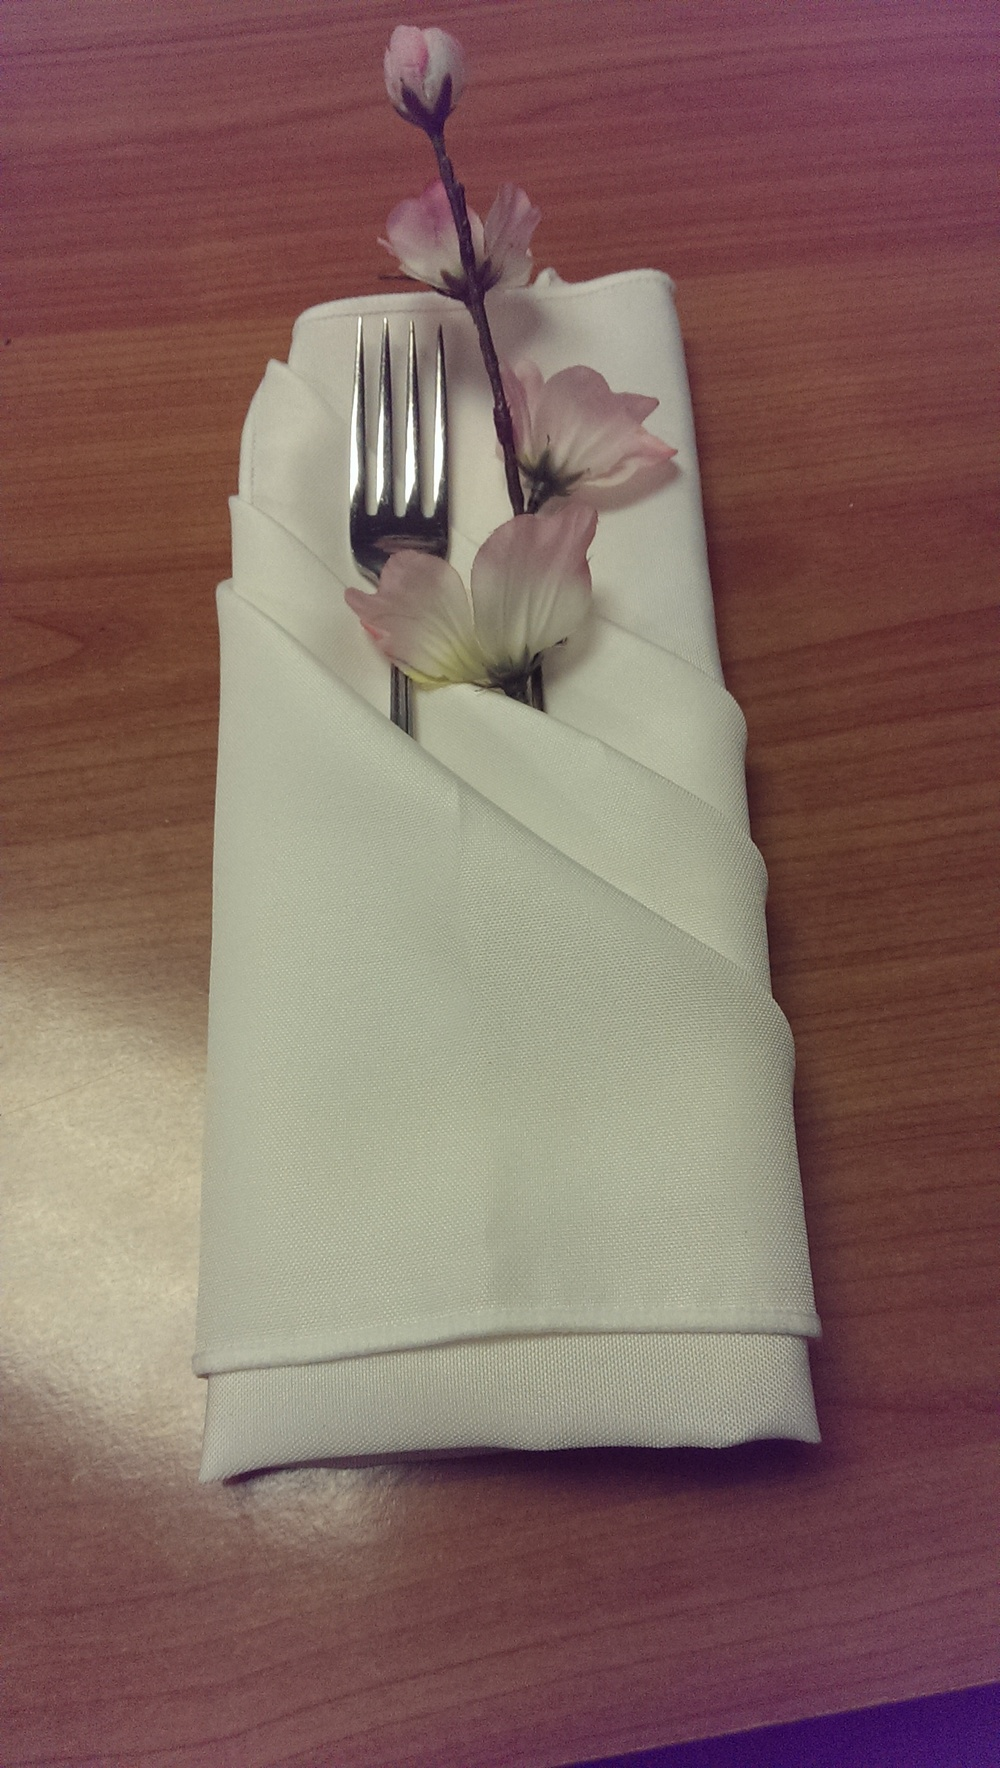 Flip the napkin over and add whatever you want in the pockets. Make it your own style and have fun with it!